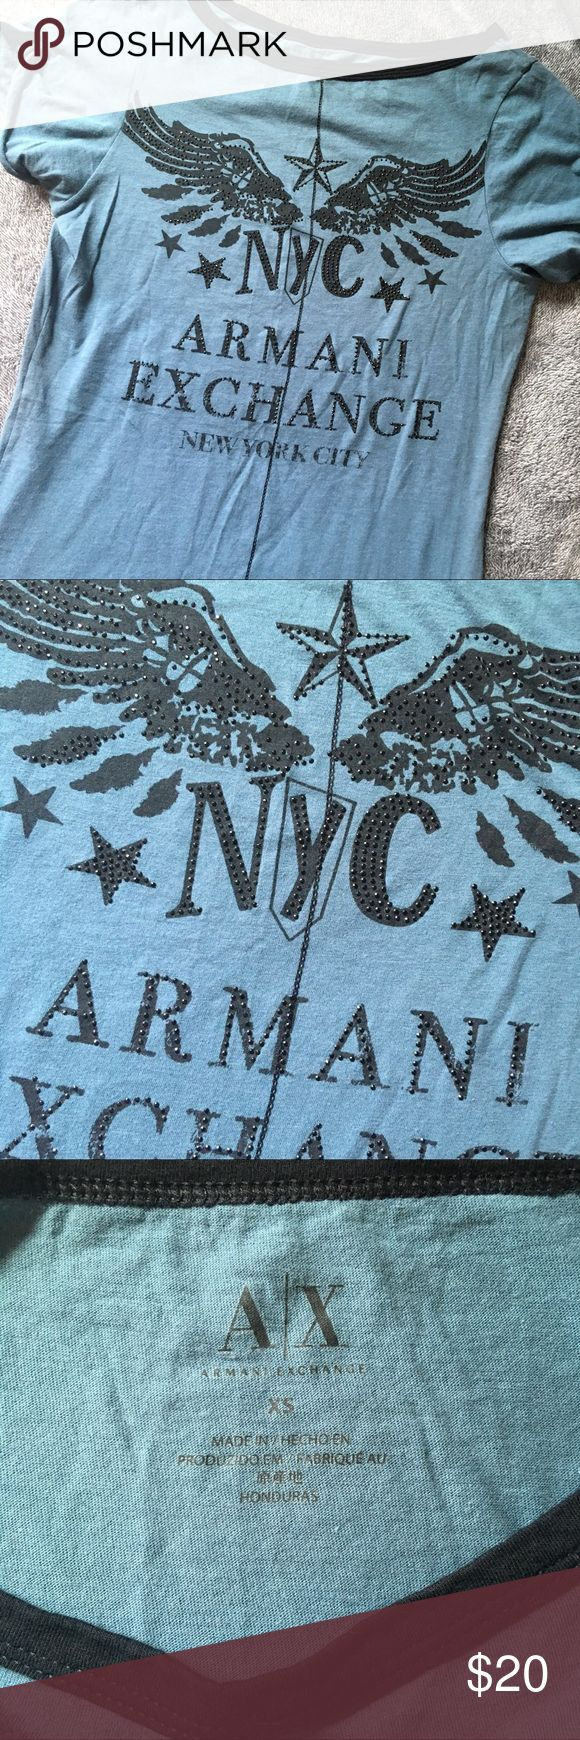 Armani Exchange Top • Size X-Small • Armani Exchange • Rhinestones on Lettering • All Rhinestones Intact • No Holes / No Stains • Super Stretchy Material  ⚠️ All items are individually video recorded during packaging and before shipment. This is to prevent fraud & assure you receive the item you ordered in the condition described. Armani Exchange Tops Tees - Short Sleeve